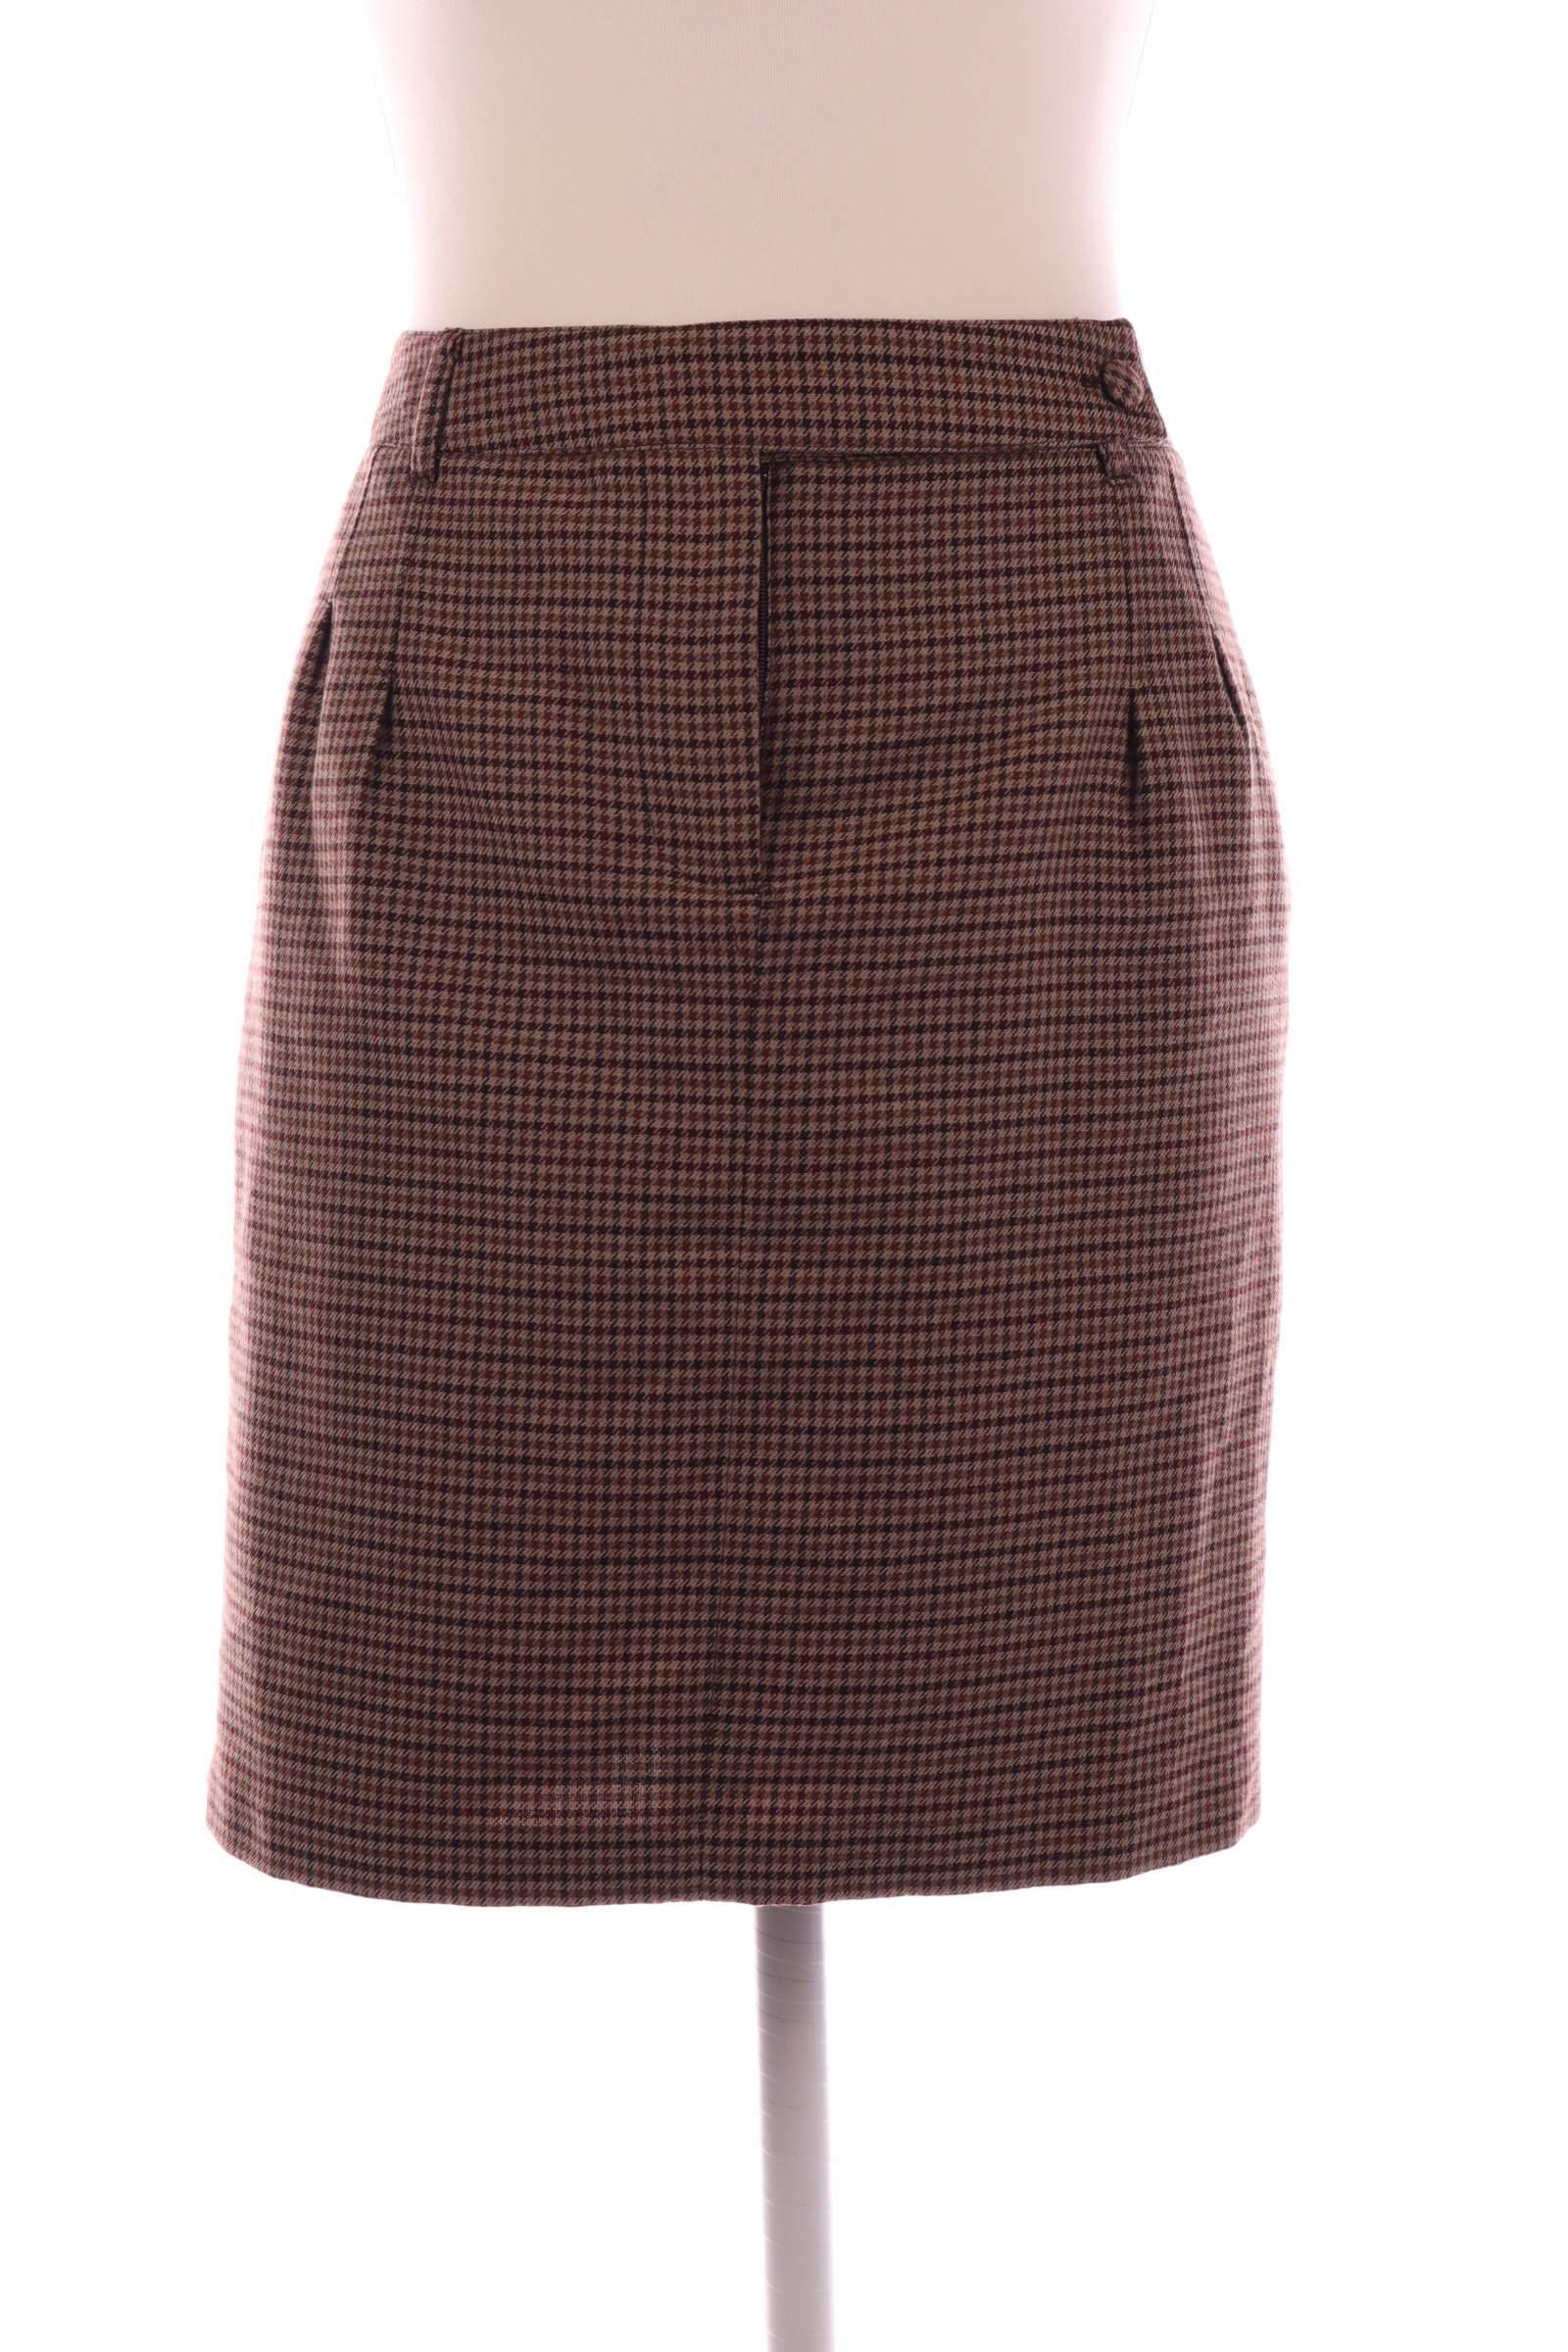 H&M Brown Skirt - upty.store